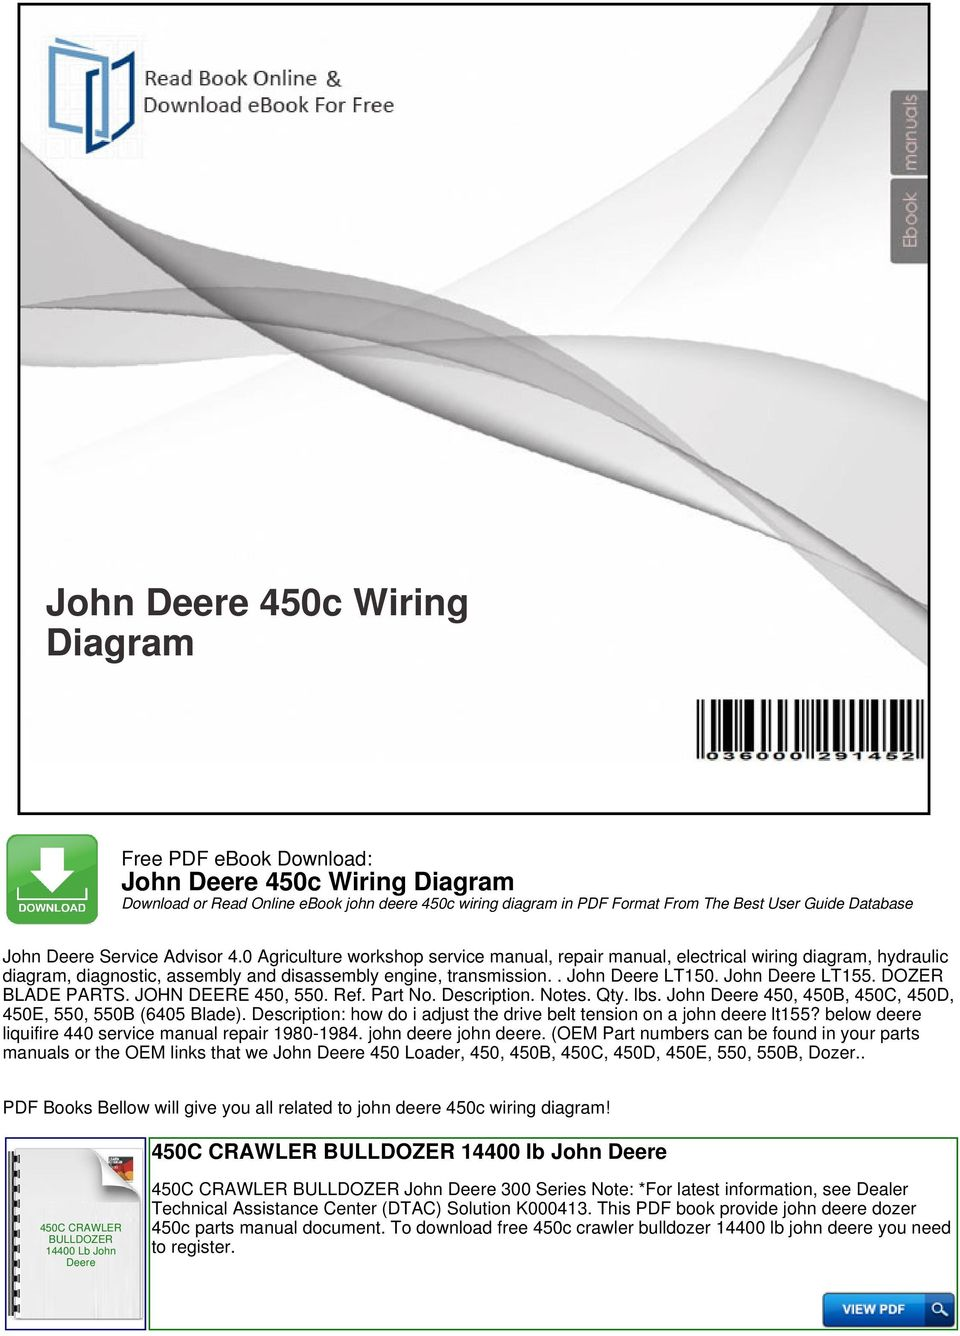 john deere 450c wiring diagram pdf dozer blade parts john deere 450 550 ref part no description